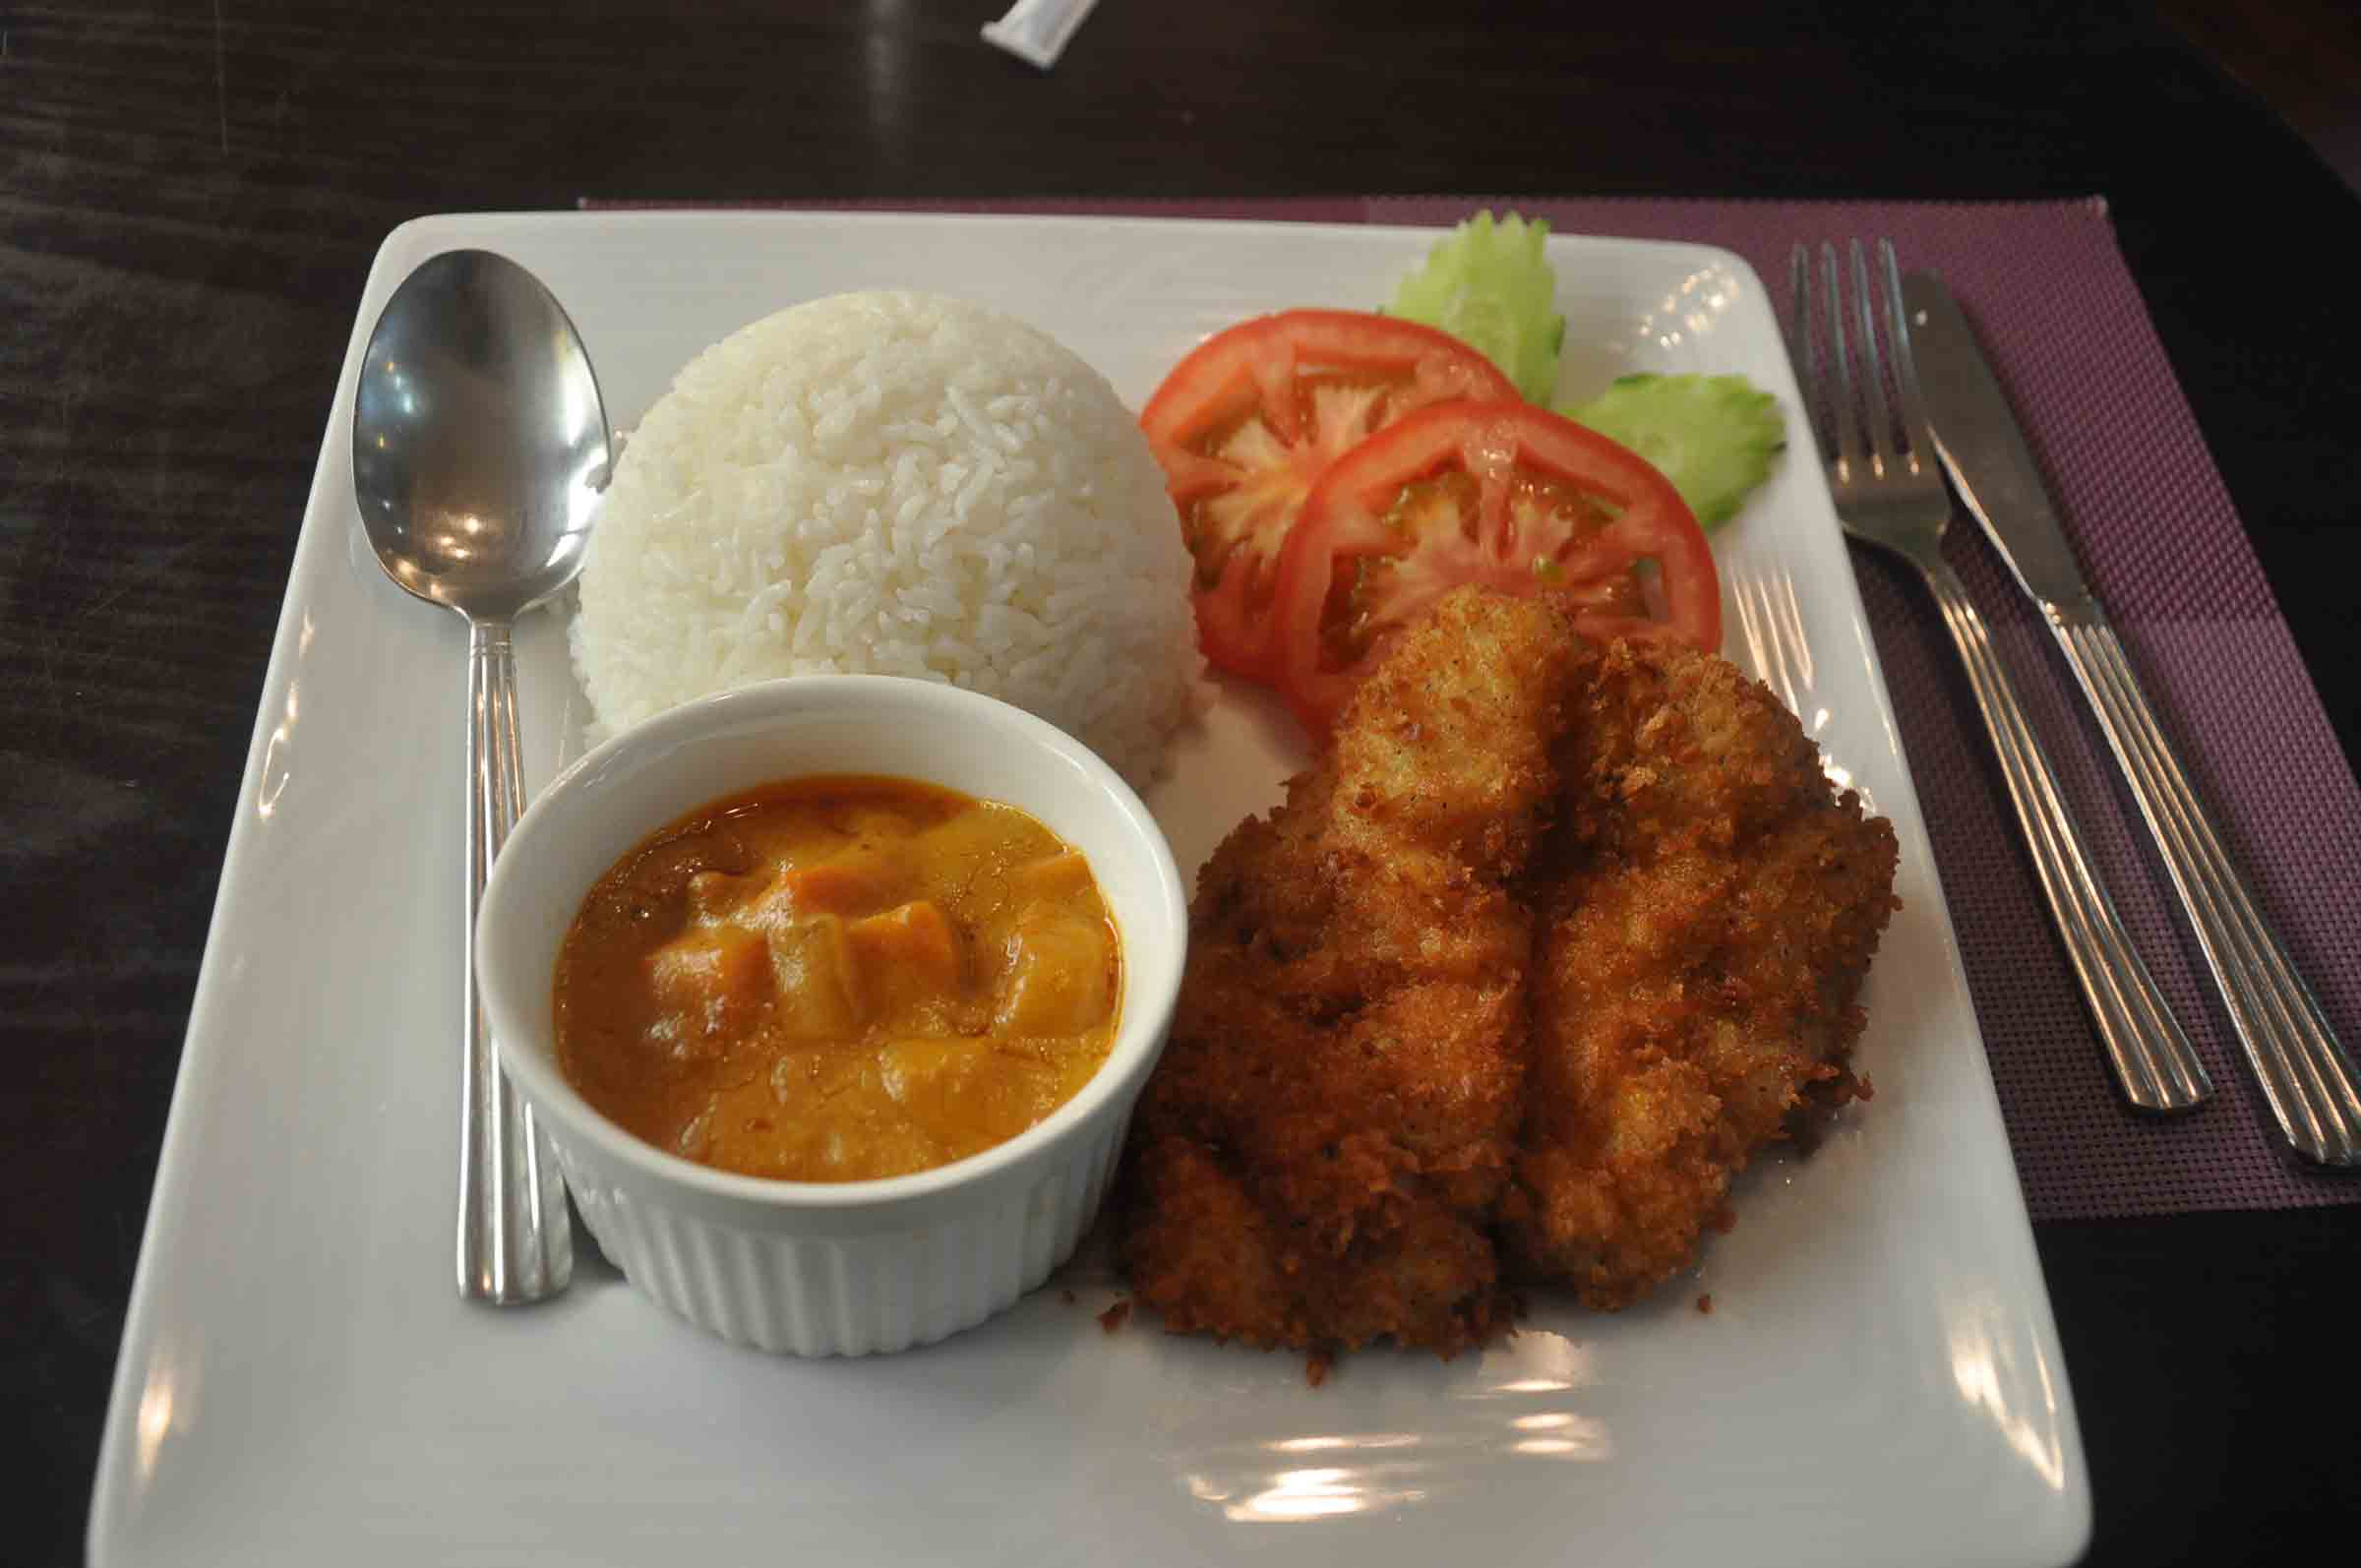 Lord Stows Garden Cafe fish fillet with rice